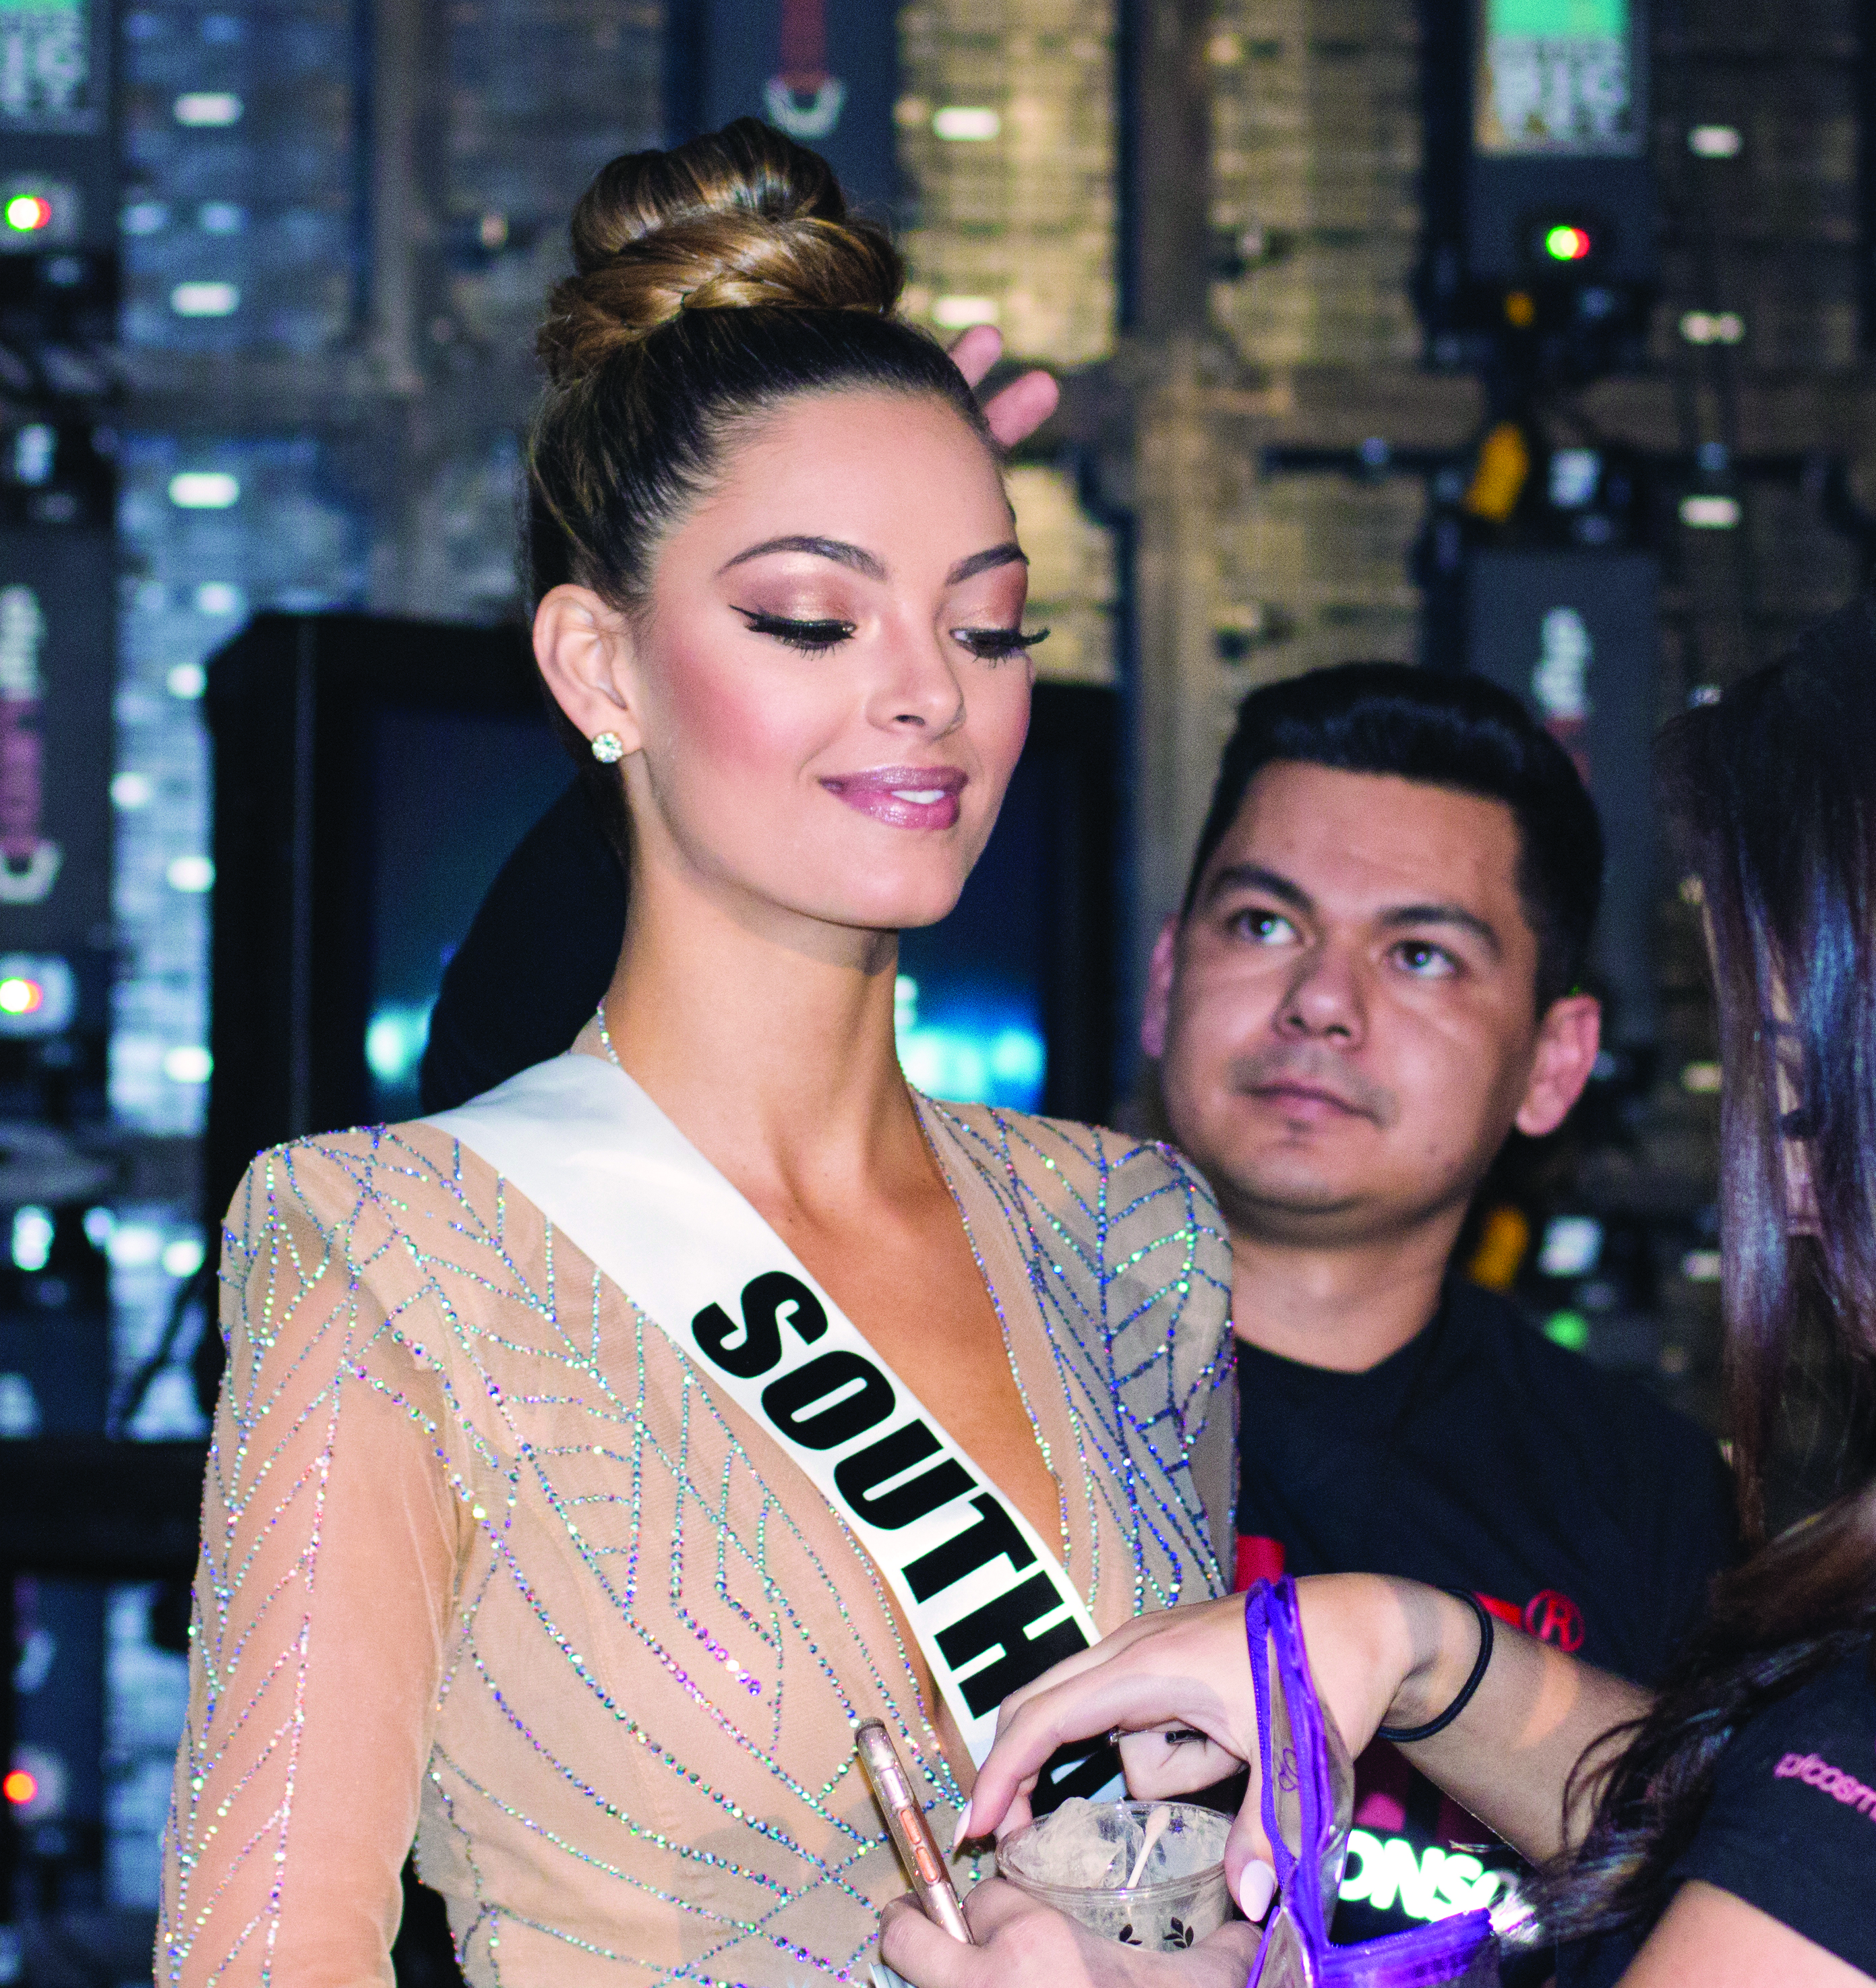 This year's winning contestant, Demi-Leigh Nel-Peters, Miss South Africa, sported an elegant braided bun styled by CHI artist Julian Macias.